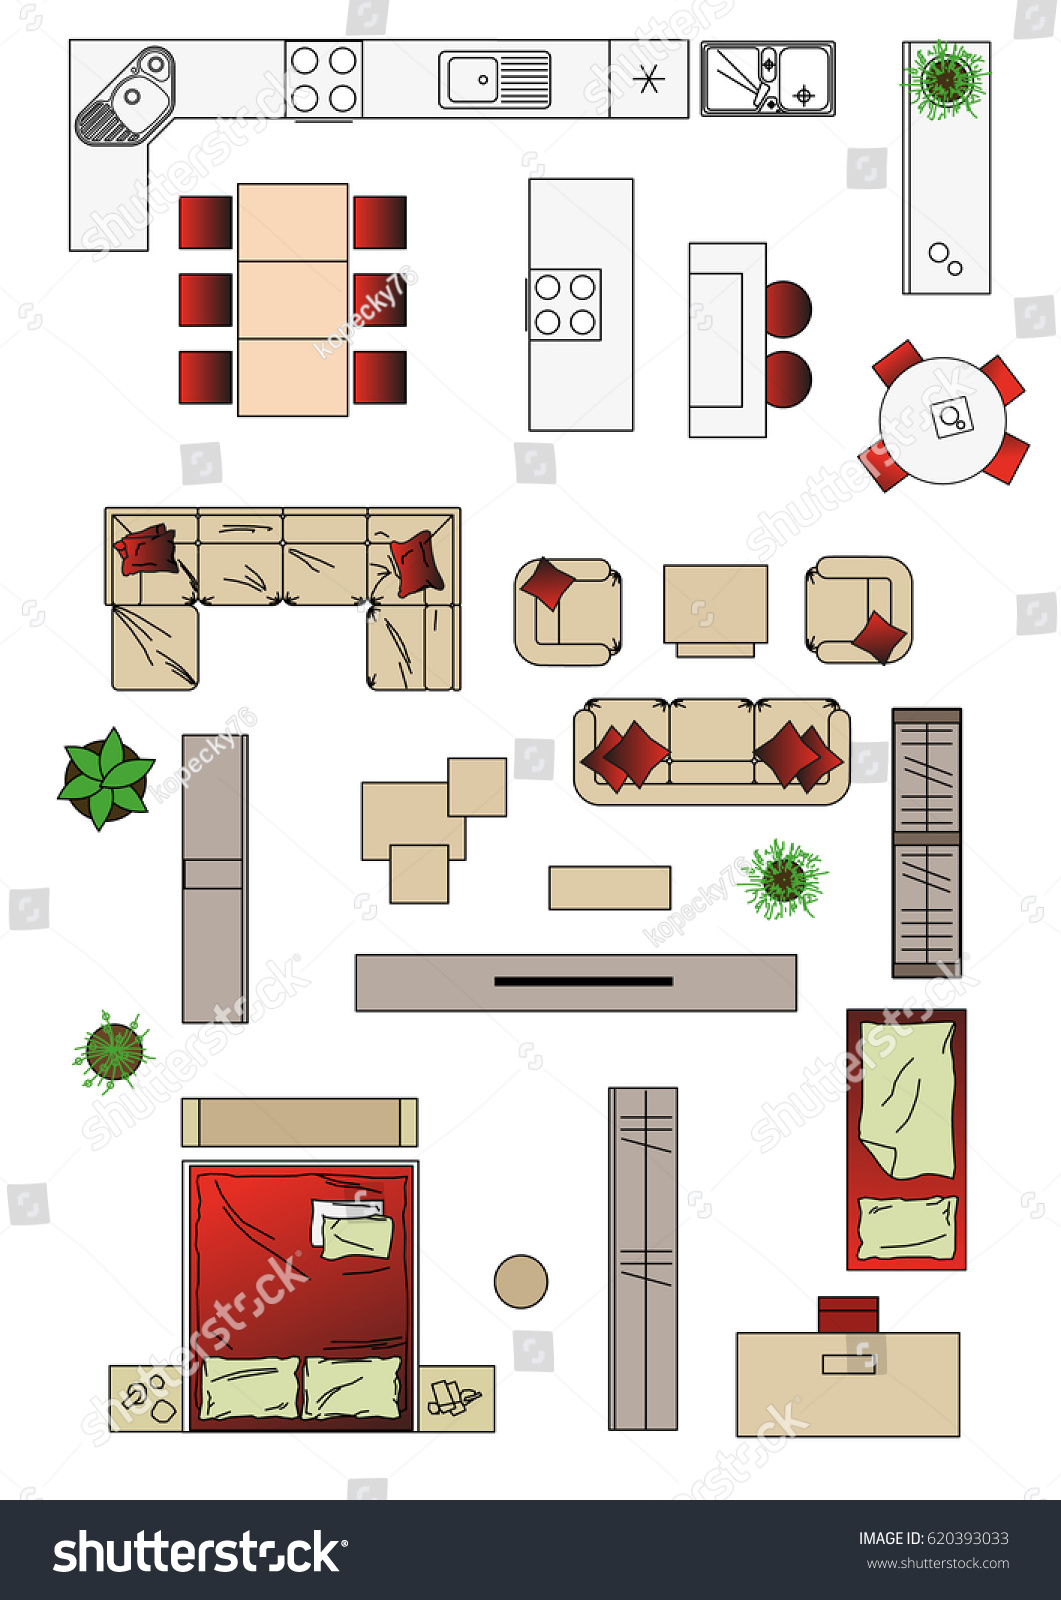 Illustration interior icons top view furniture stock for Interior design images vector